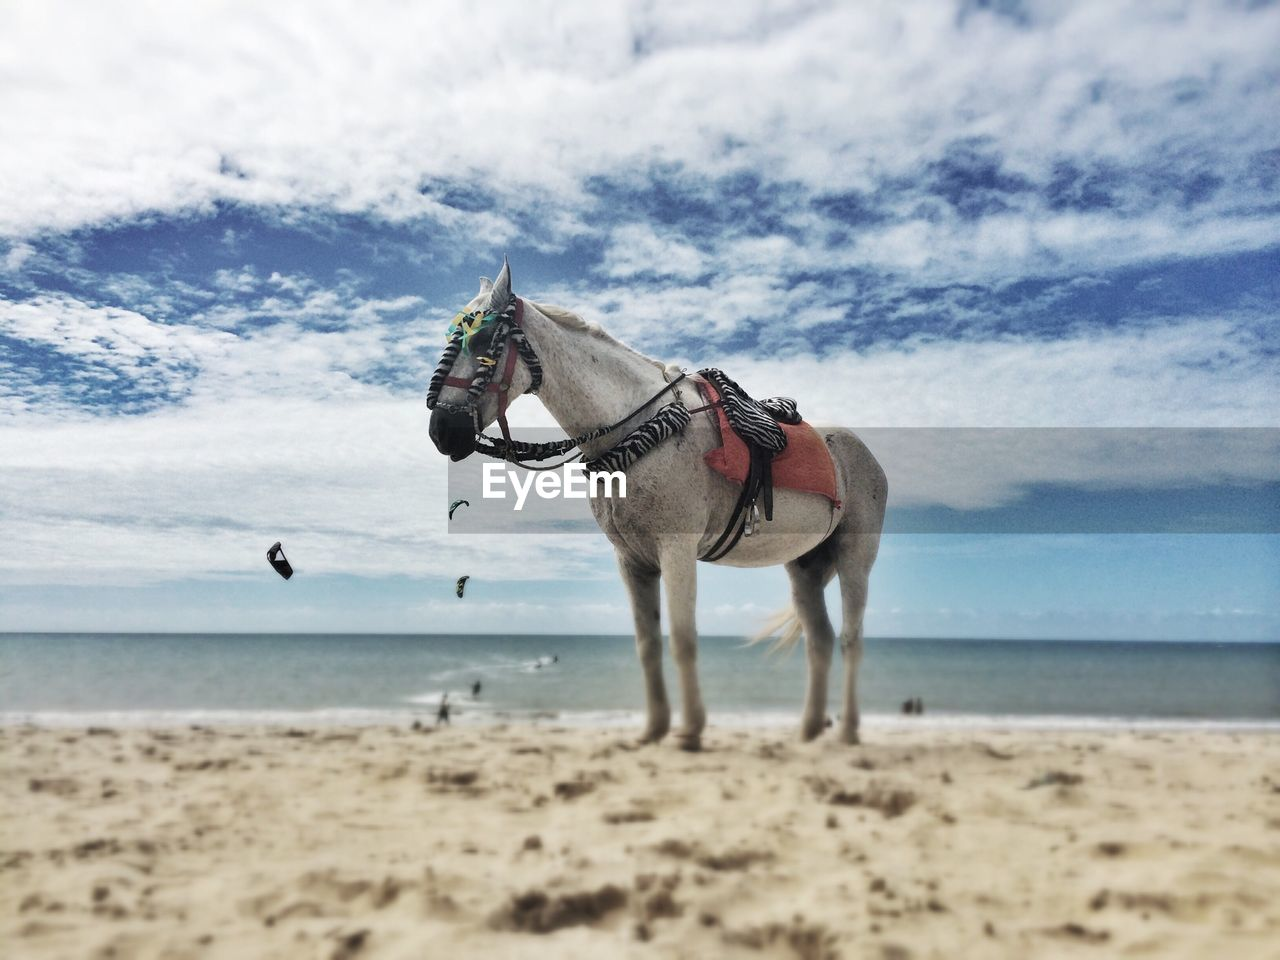 Horse standing on calm beach against clouds